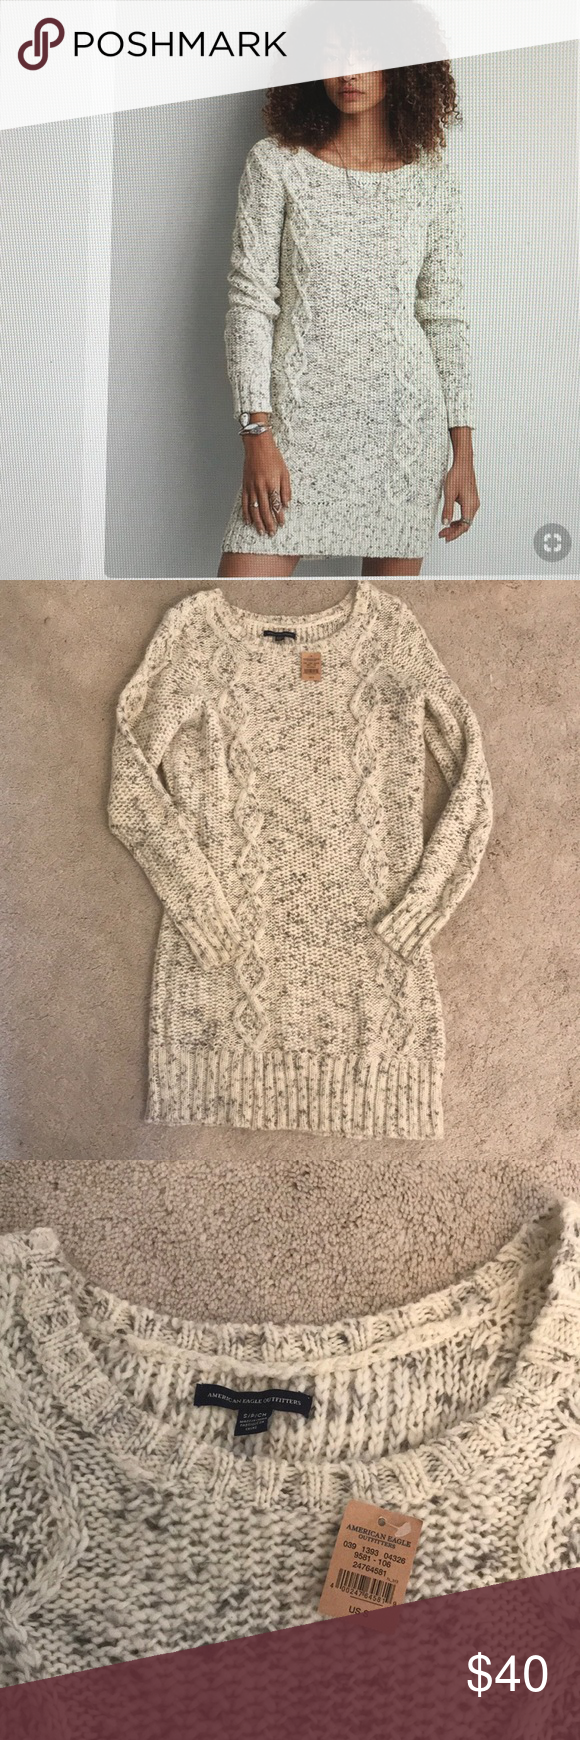 Ae Cable Knit Marbled Sweater Dress Size Small Ae Marbled Sweater Dress Color Oatmeal Soft Cabl Sweater Dress Cable Knit American Eagle Outfitters Dresses